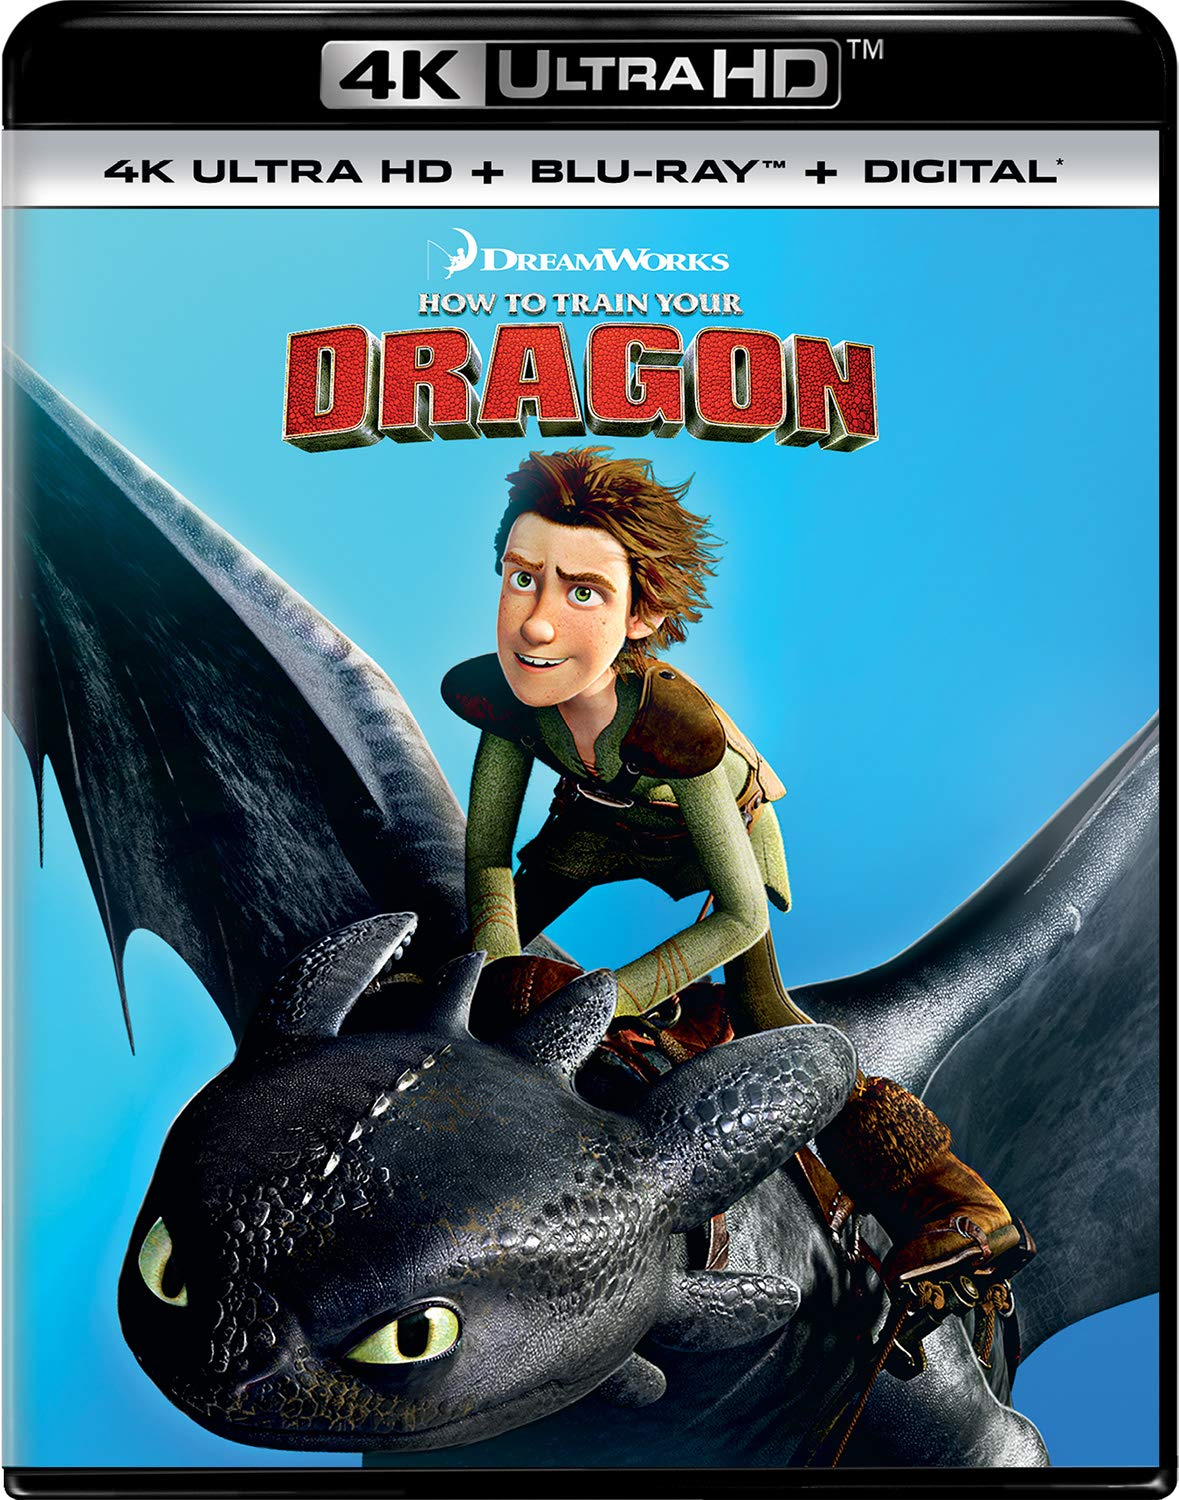 4K Blu-ray : How To Train Your Dragon (With Blu-ray, 4K Mastering, Digital Copy, 2 Pack)